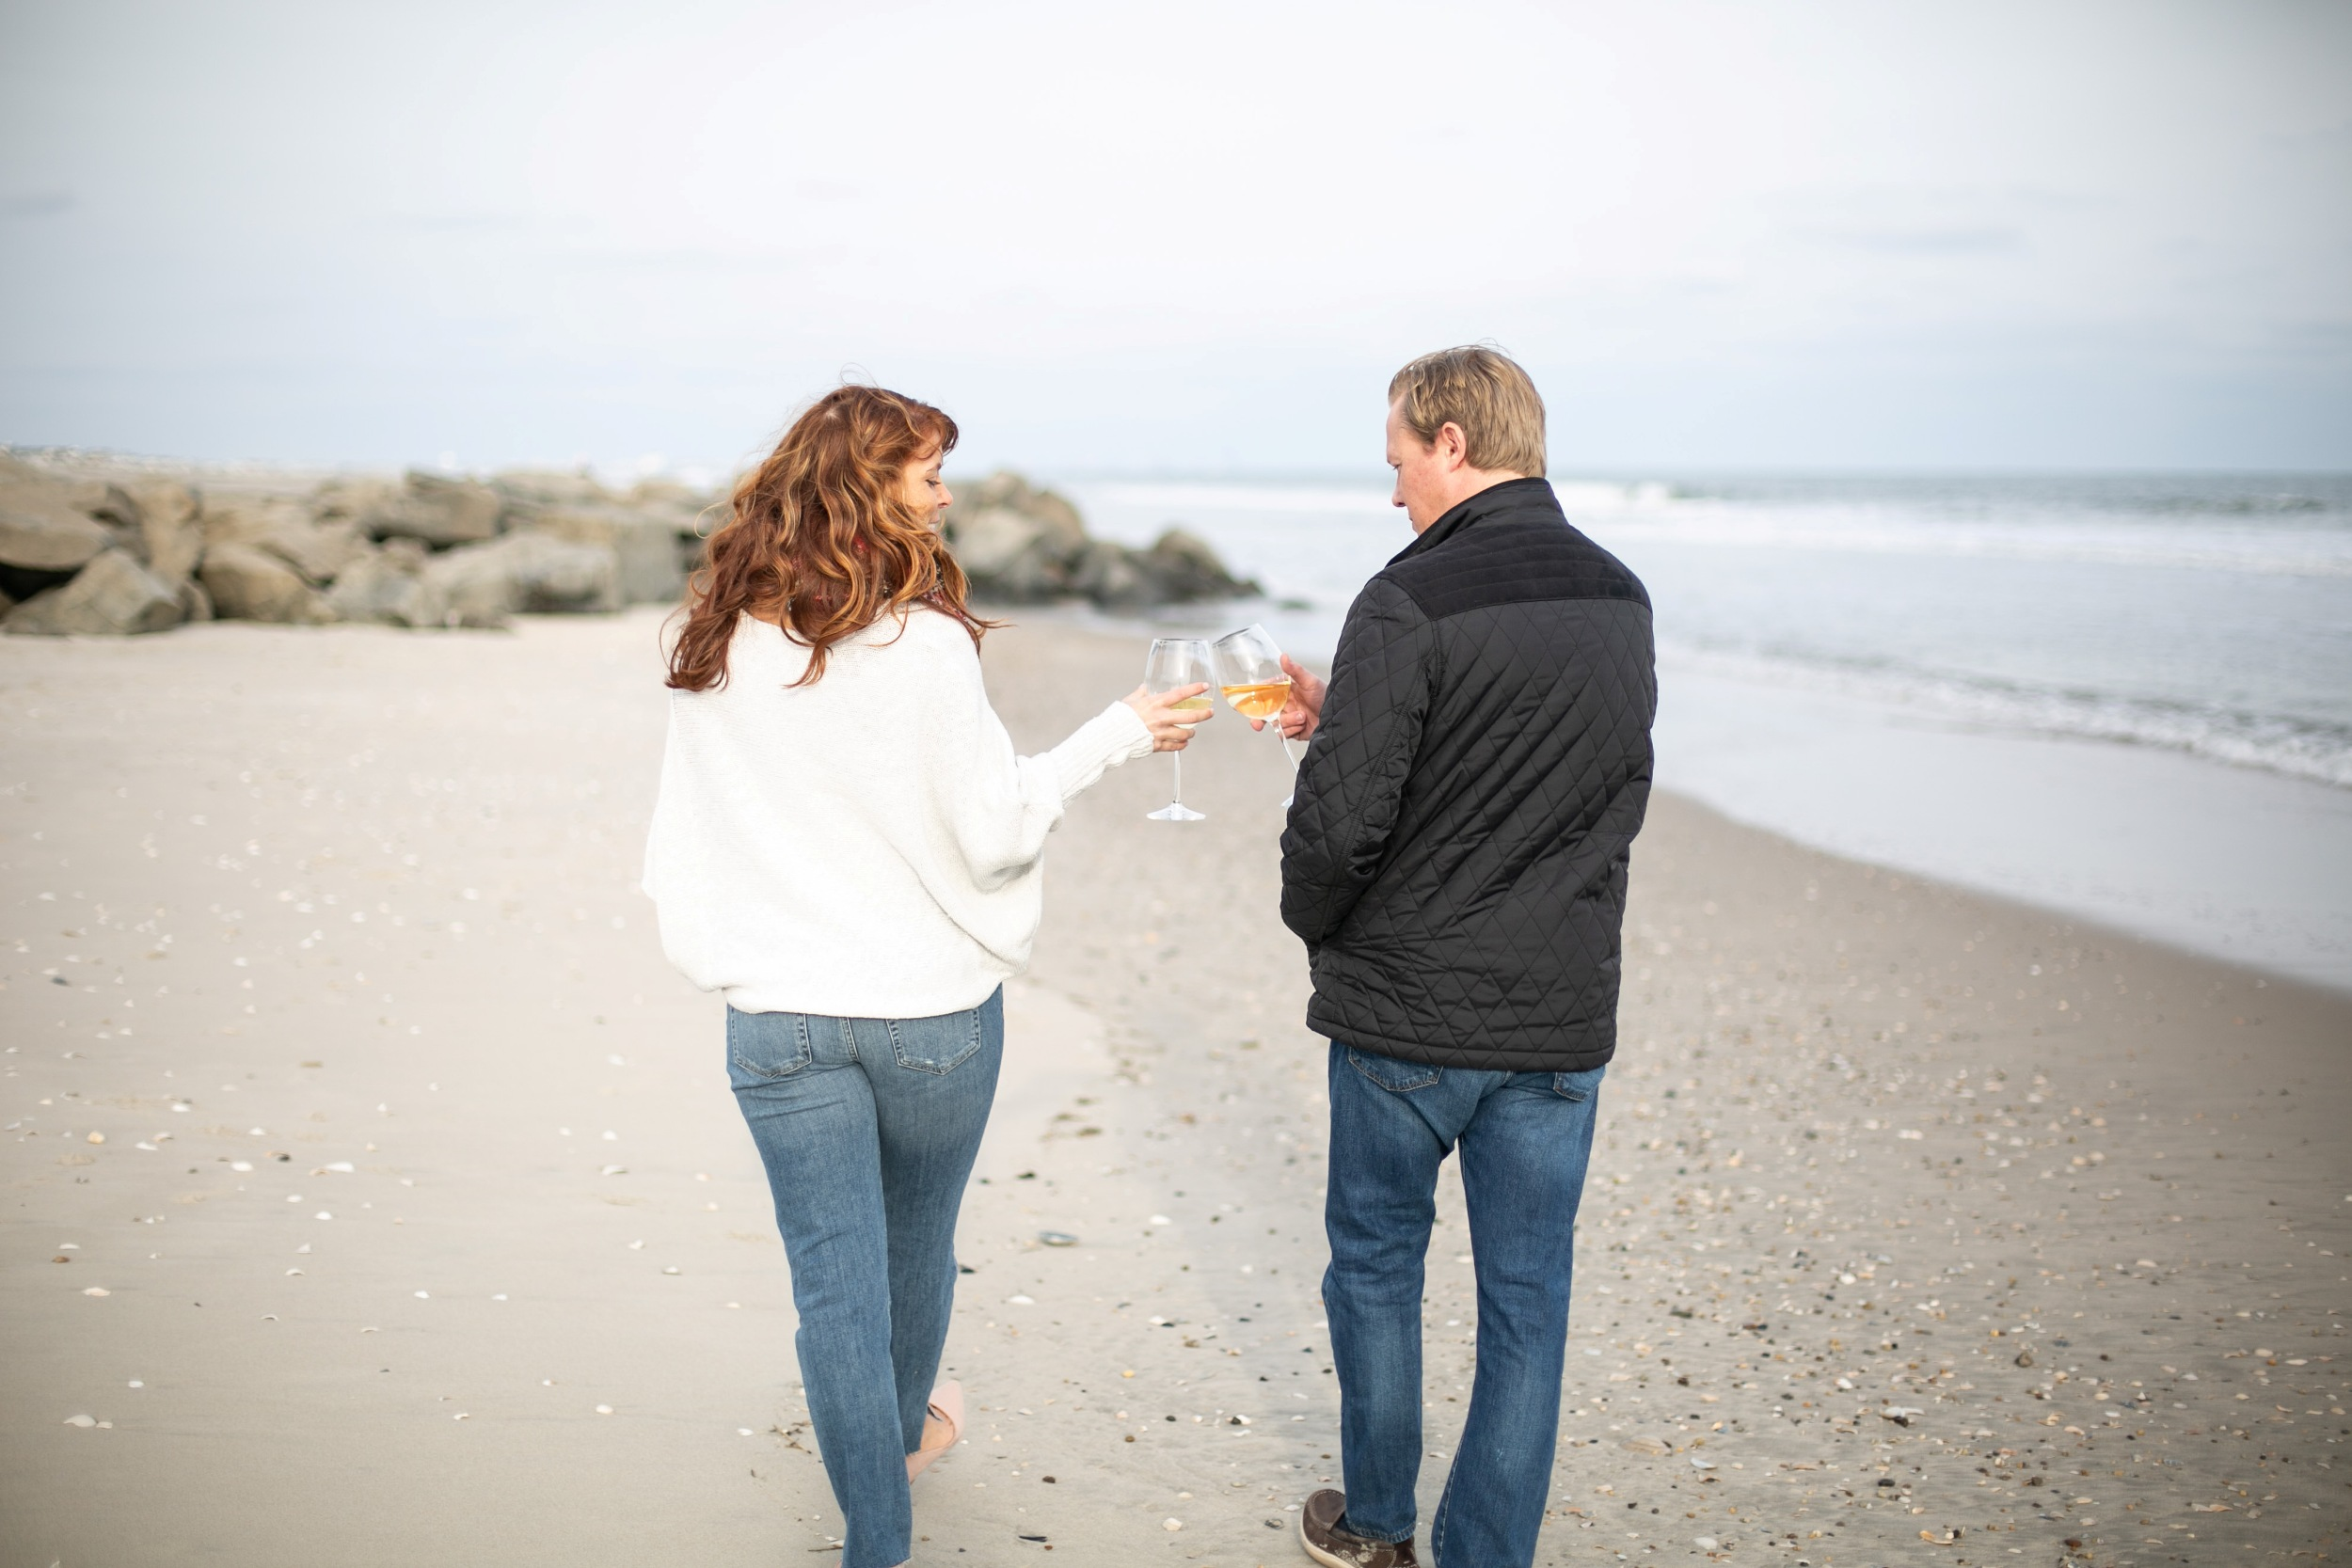 everly tuckahoe ocean city engagement photos  (111 of 139)111.jpg